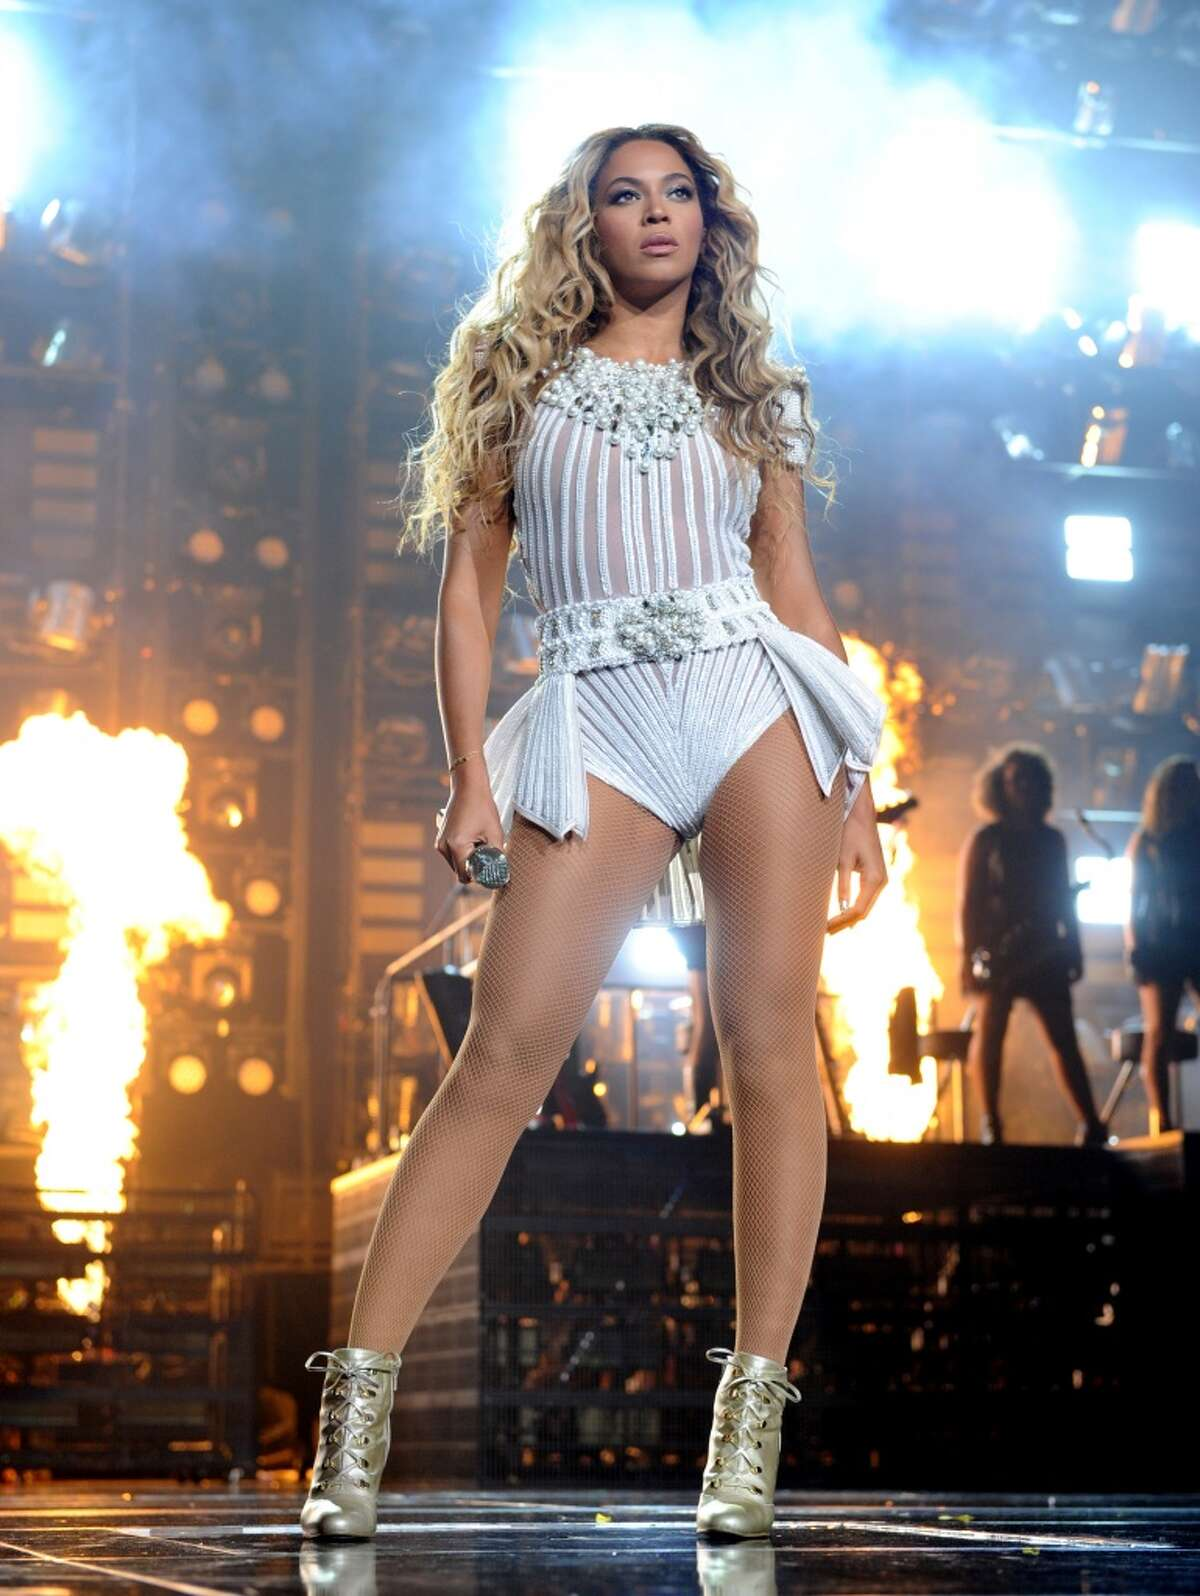 Beyonce Knowles fell onstage during a 2010 concert in Brazil, The Huffington Post reported. She also took a tumble at a 2007 concert.